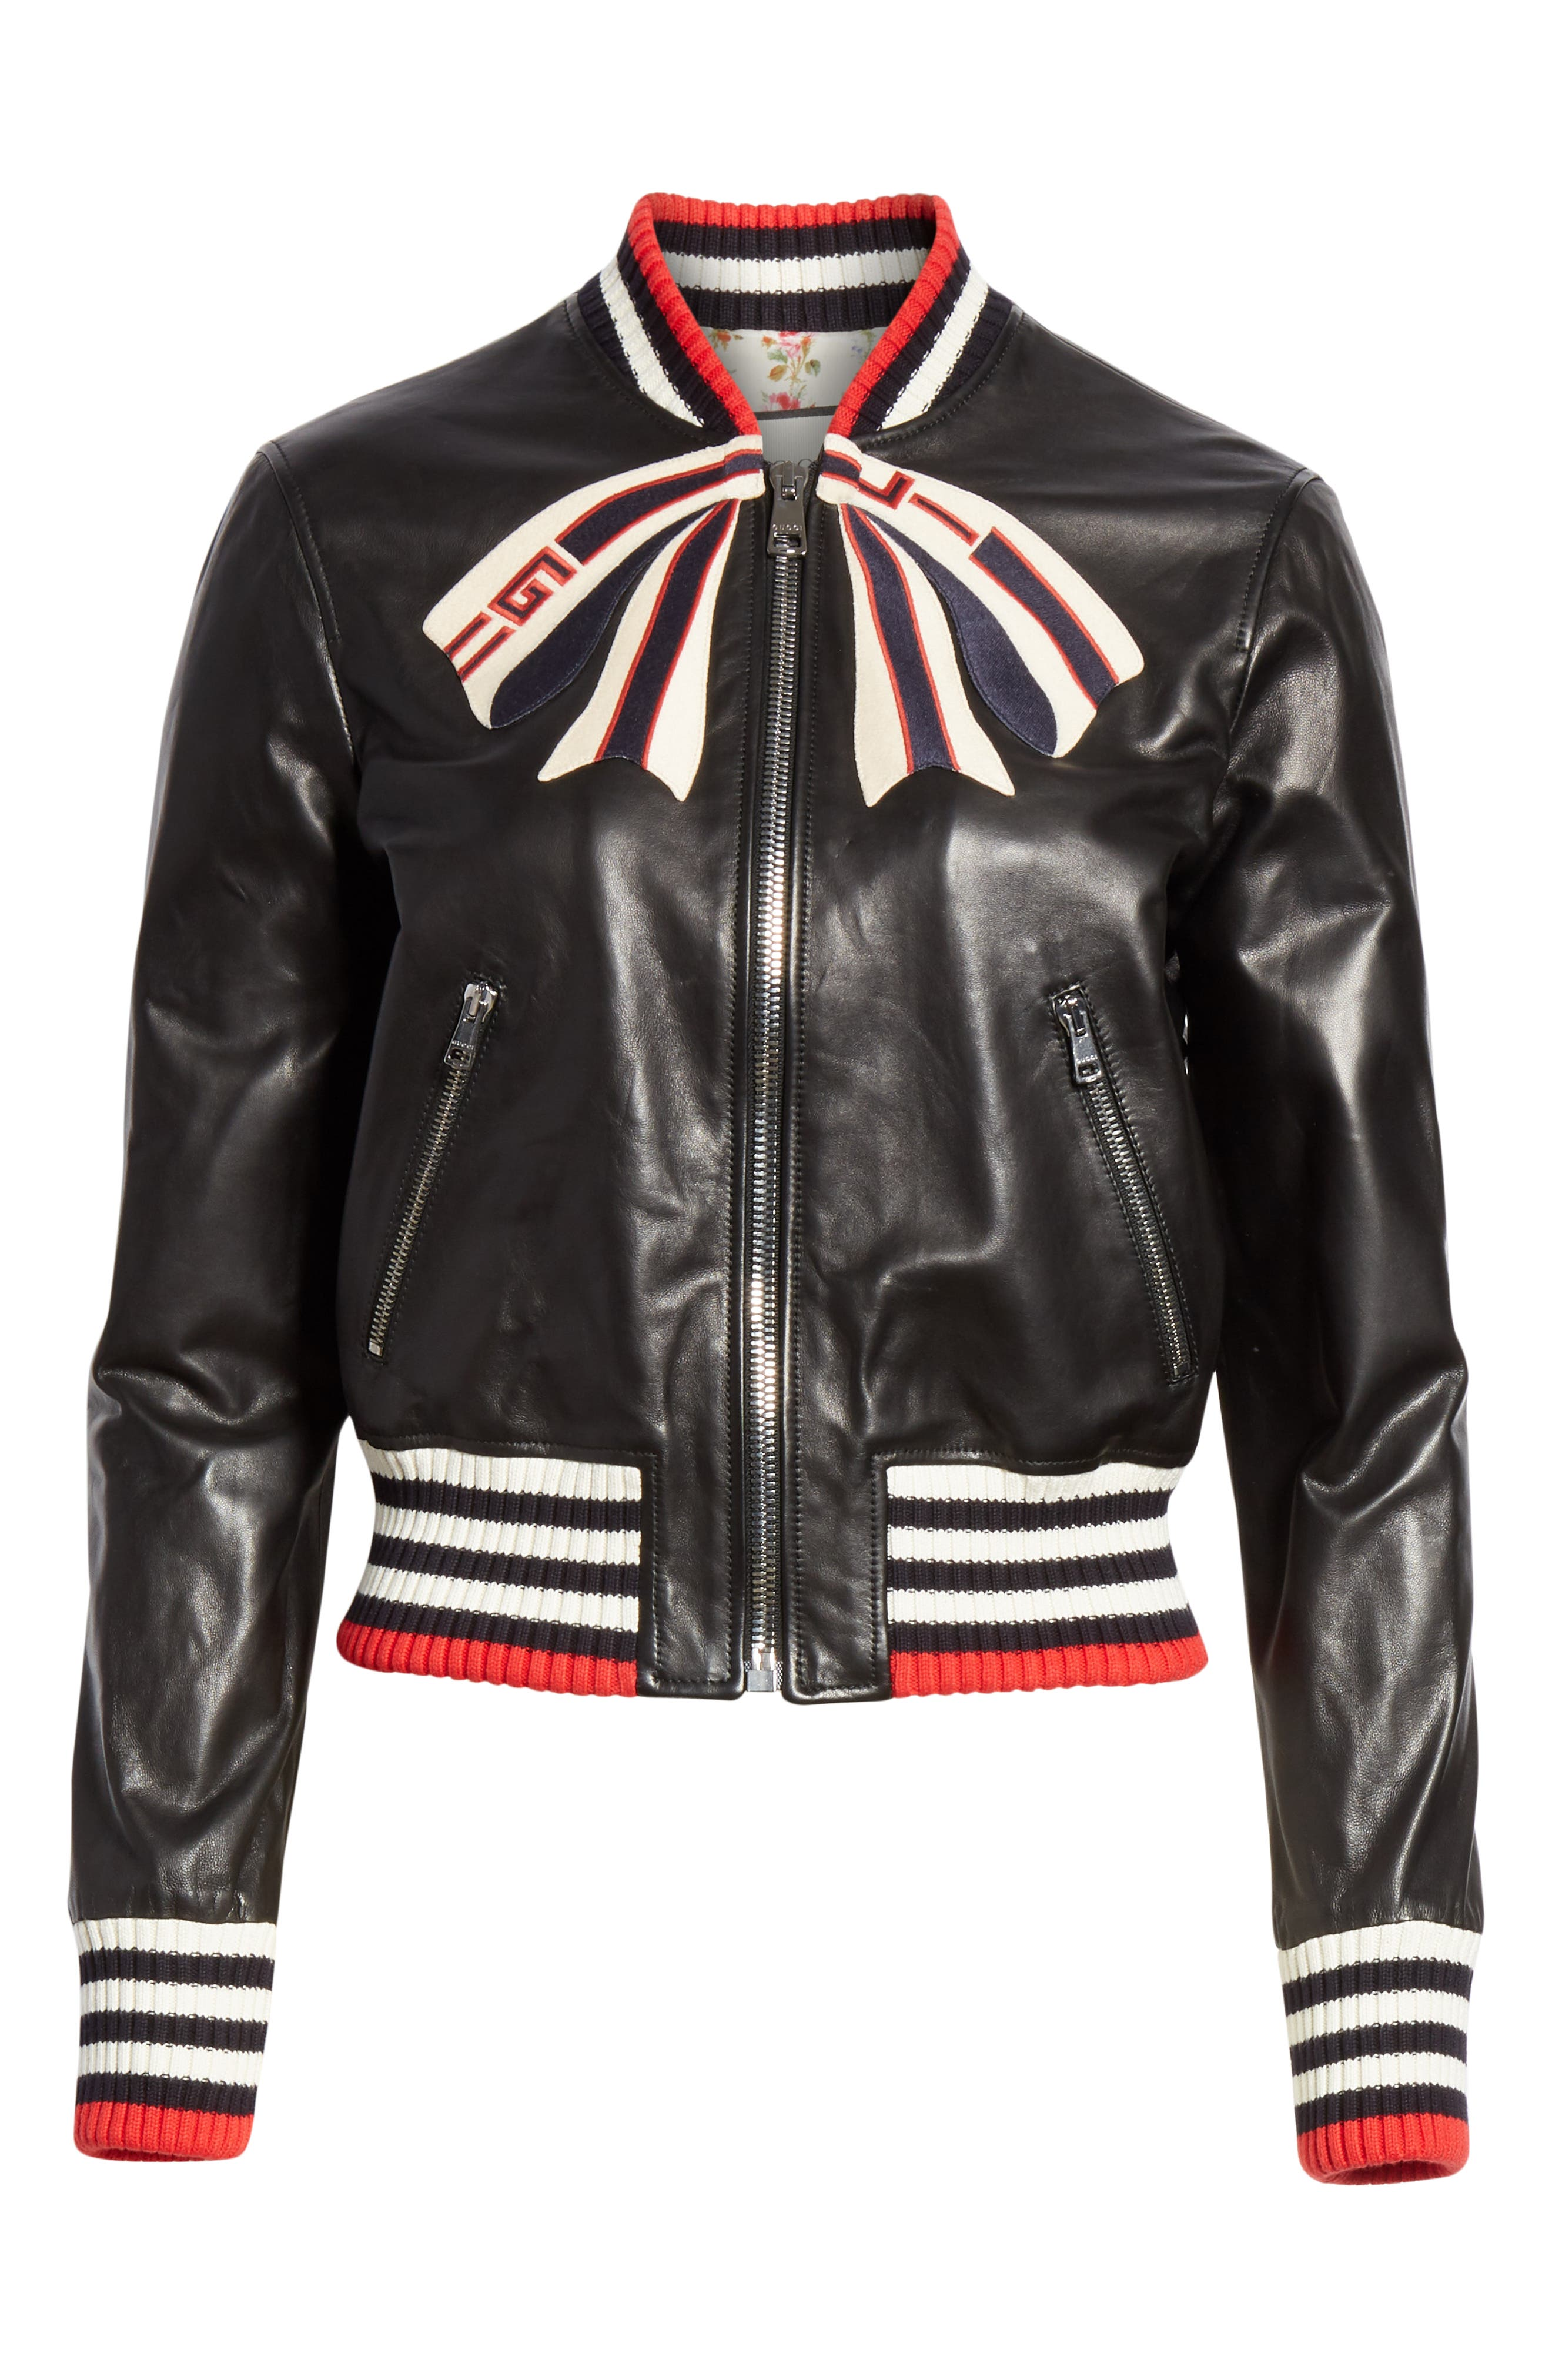 GUCCI,                             Bow Leather Bomber Jacket,                             Alternate thumbnail 4, color,                             1082 BLACK/ MULTICOLOR